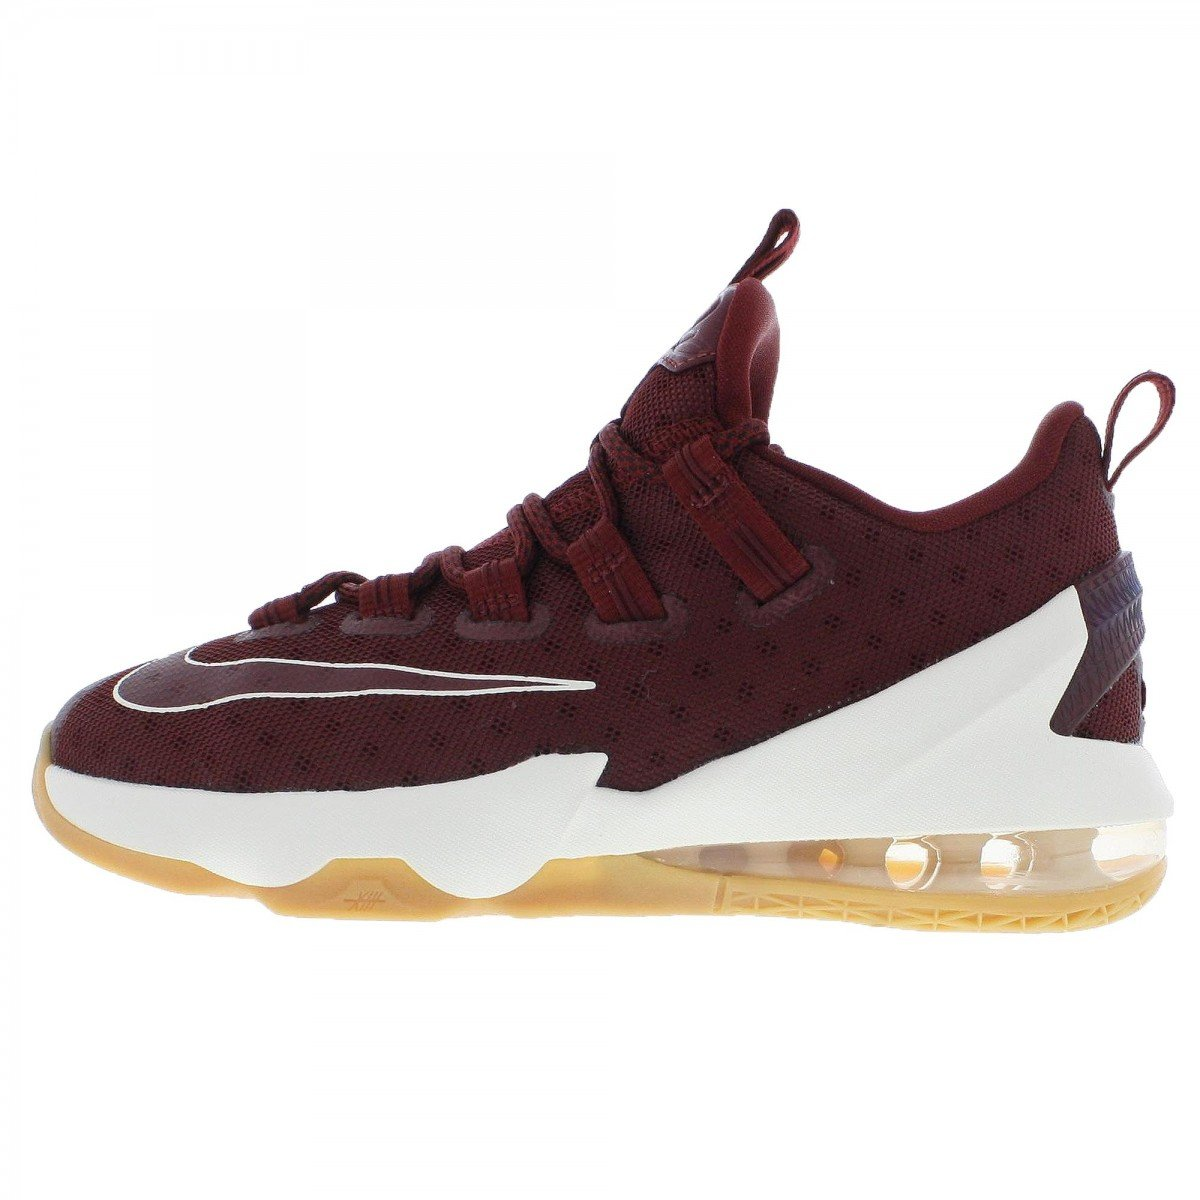 LEBRON XIII LOW (GS)-834347-600 (5Y) by NIKE